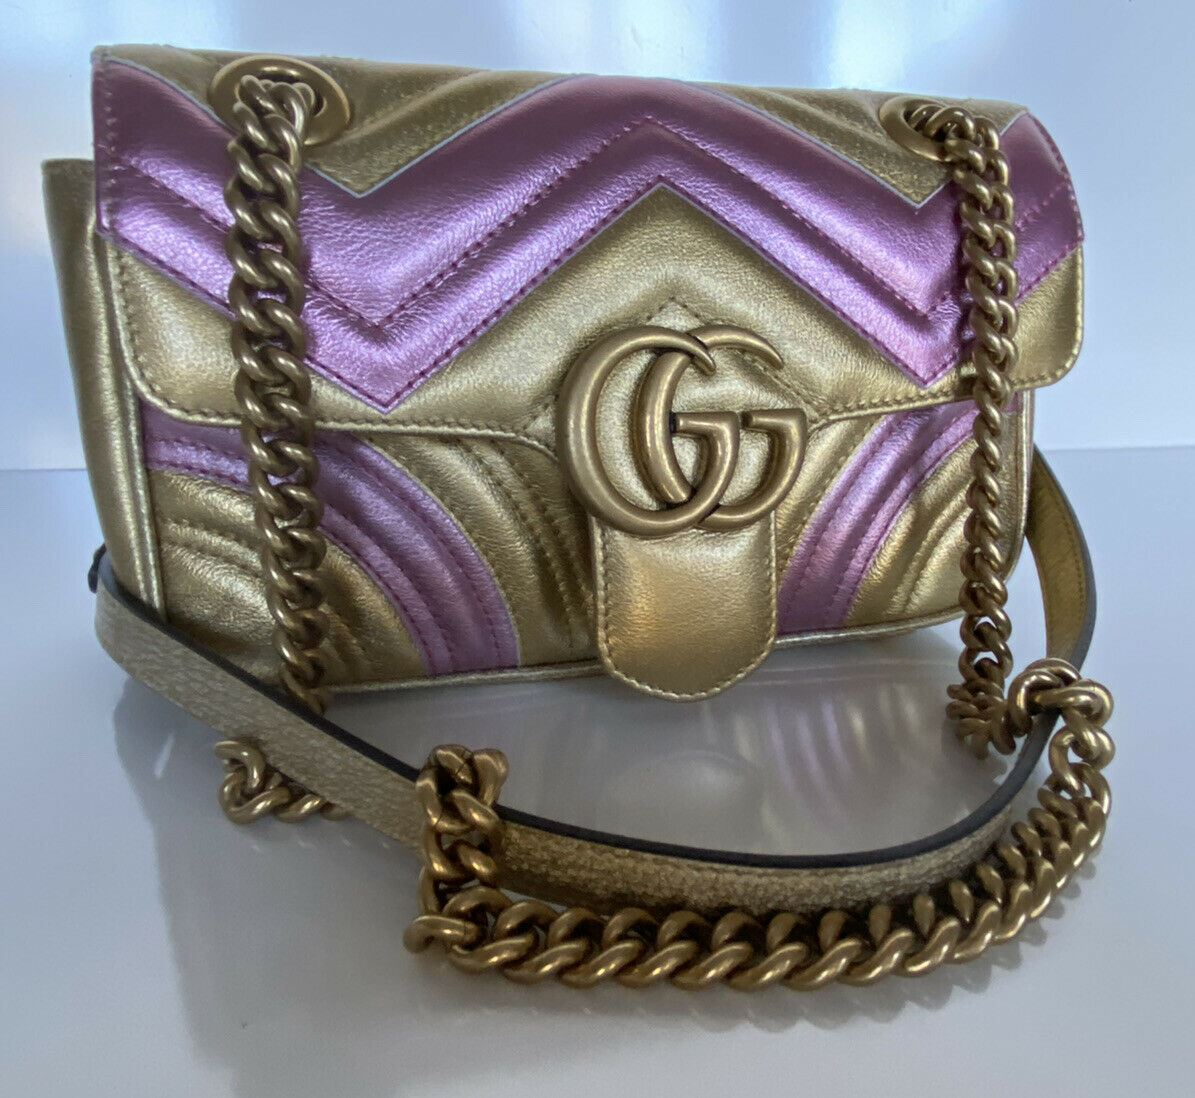 GUCCI Mini GG Marmont Matelasse Metallic Leather Shoulder Bag Gold/Pink Limited